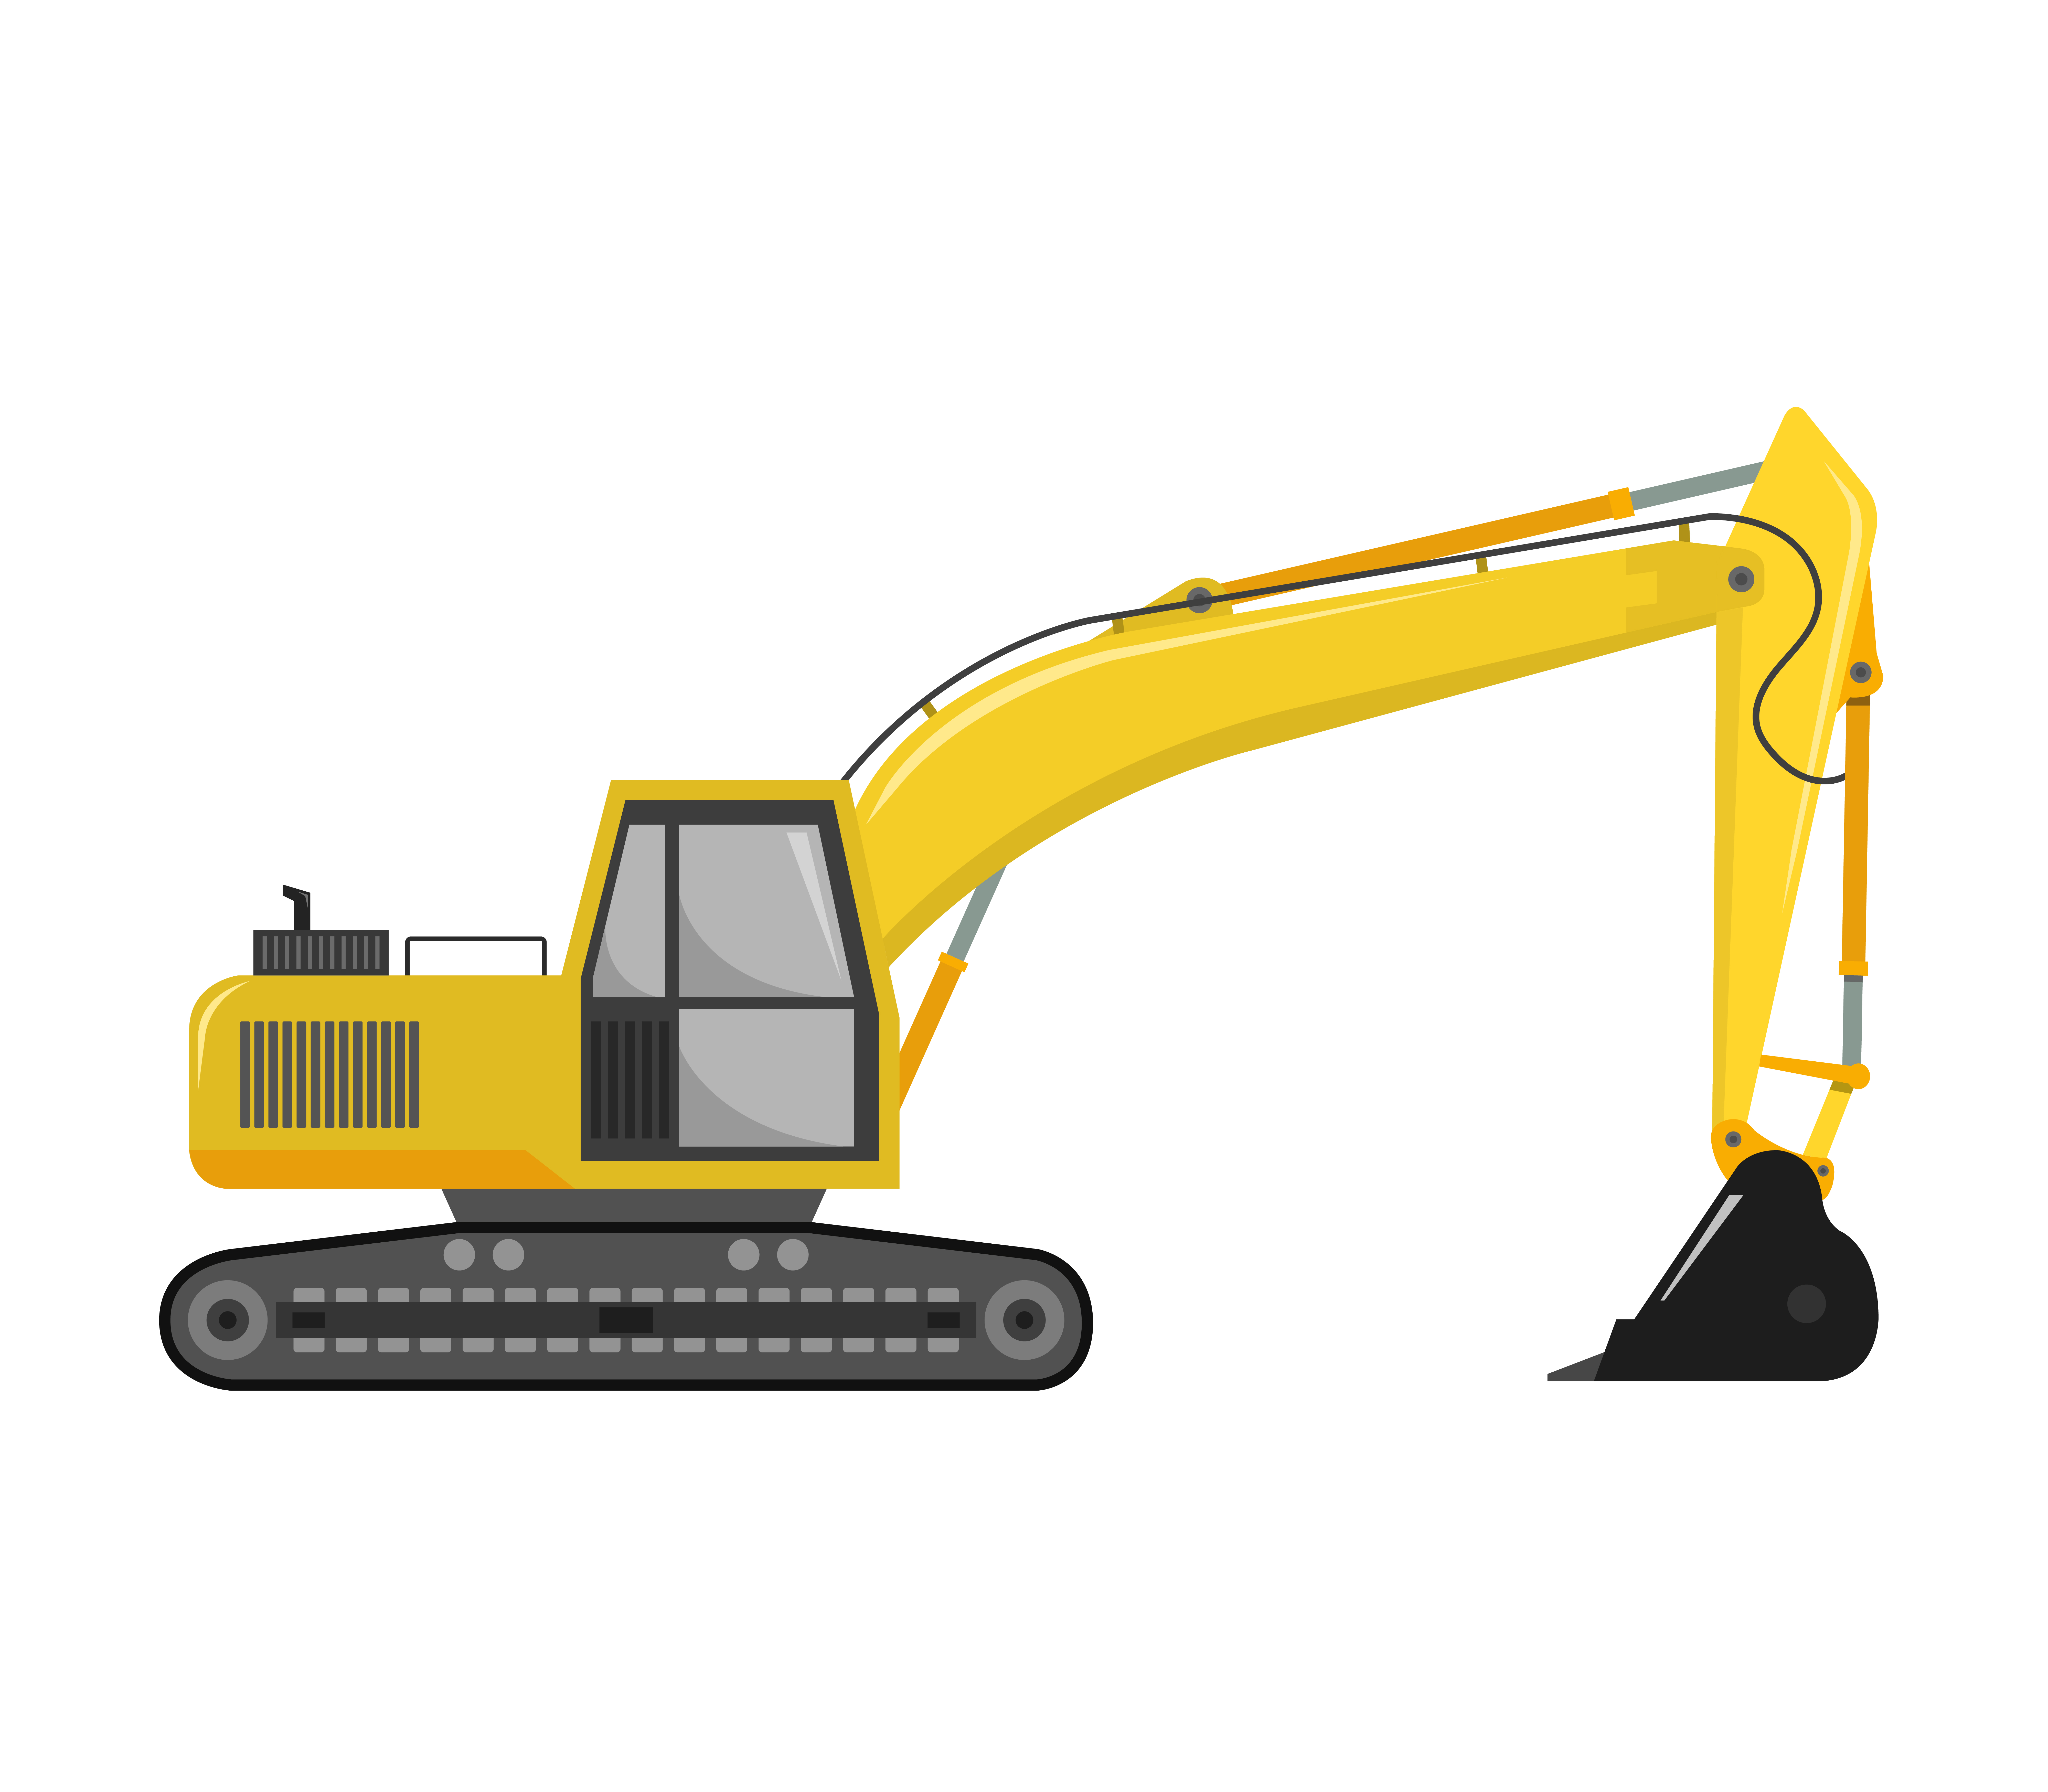 Excavator icon on a white background.